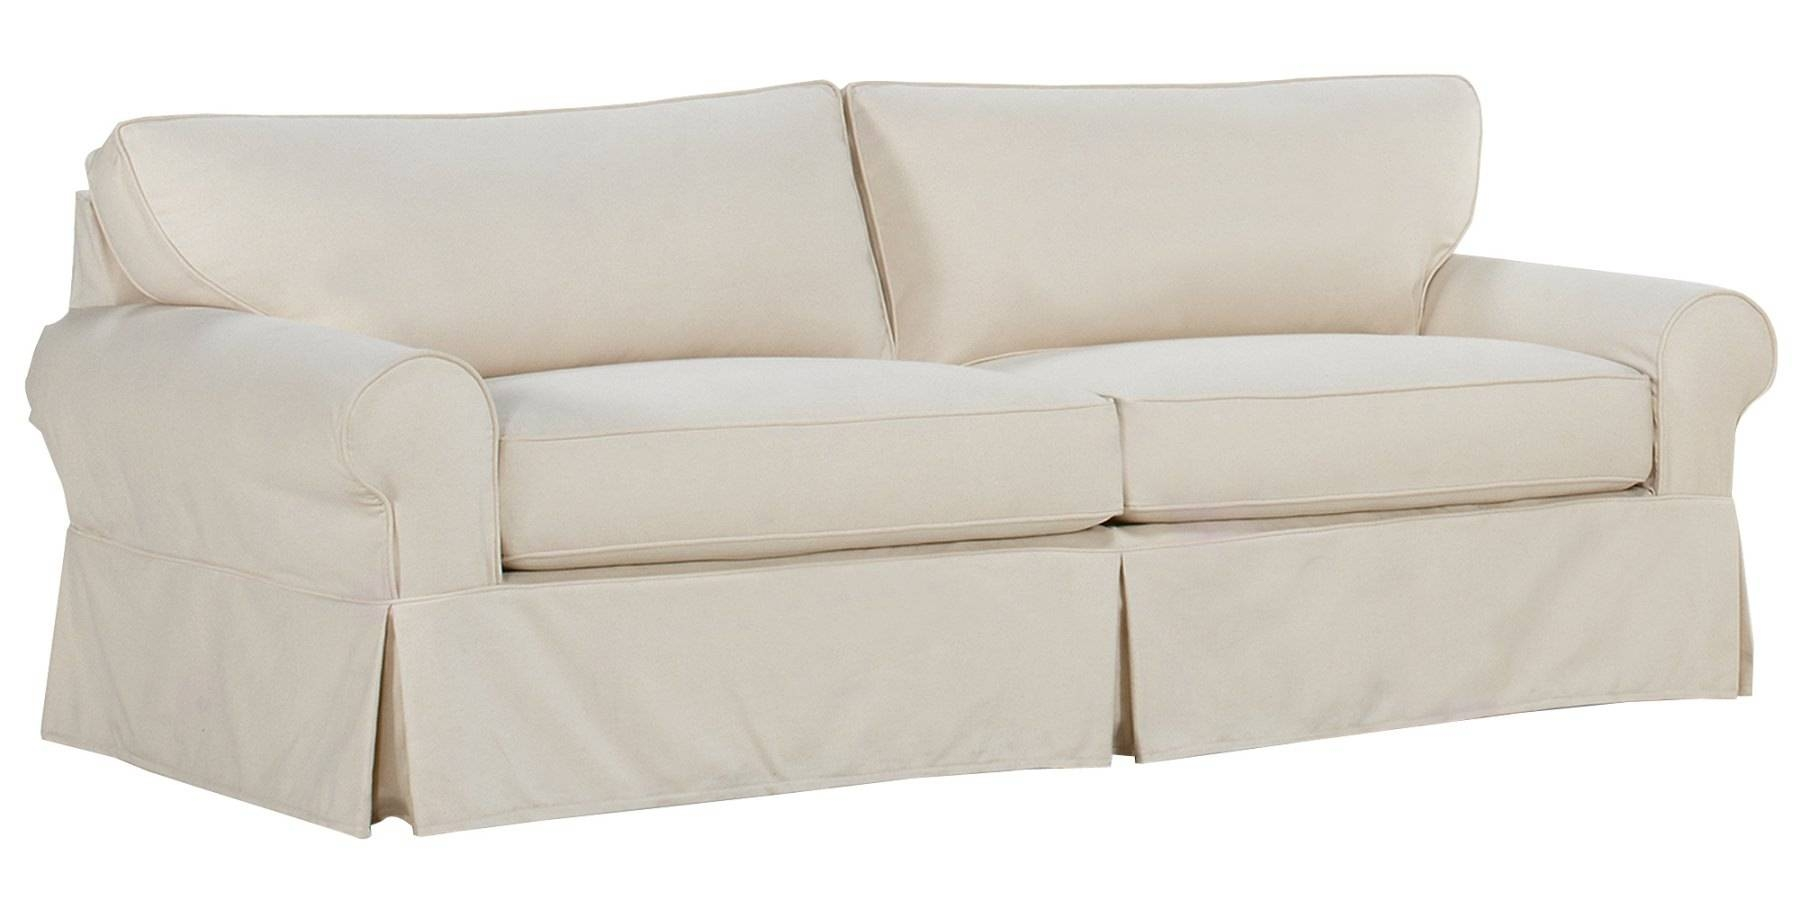 Luxury Slipcovers For Sleeper Sofas 70 About Remodel Apartment for 70 Sleeper Sofa (Image 26 of 30)